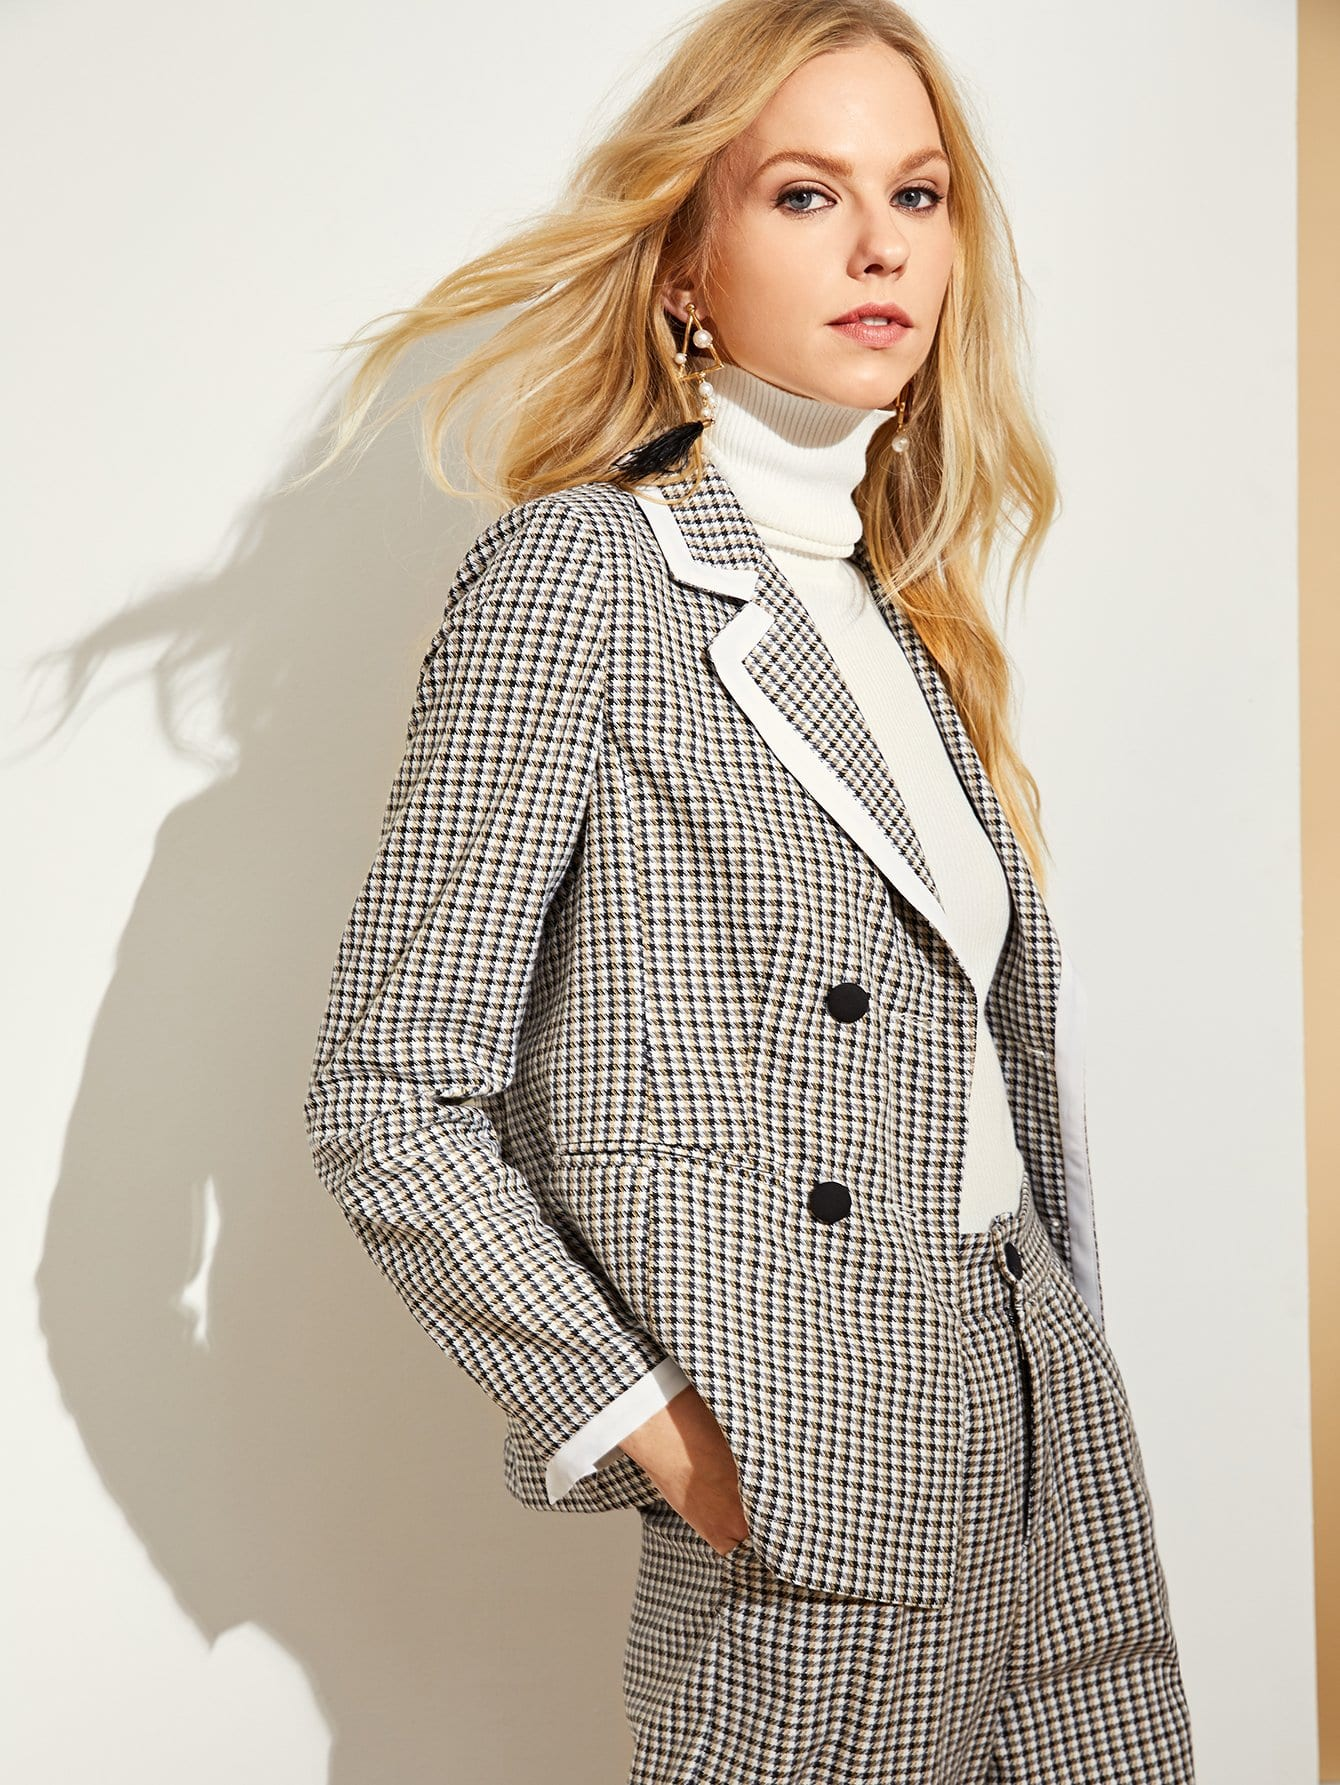 Contrast Binding Double Breasted Plaid Blazer Contrast Binding Double Breasted Plaid Blazer